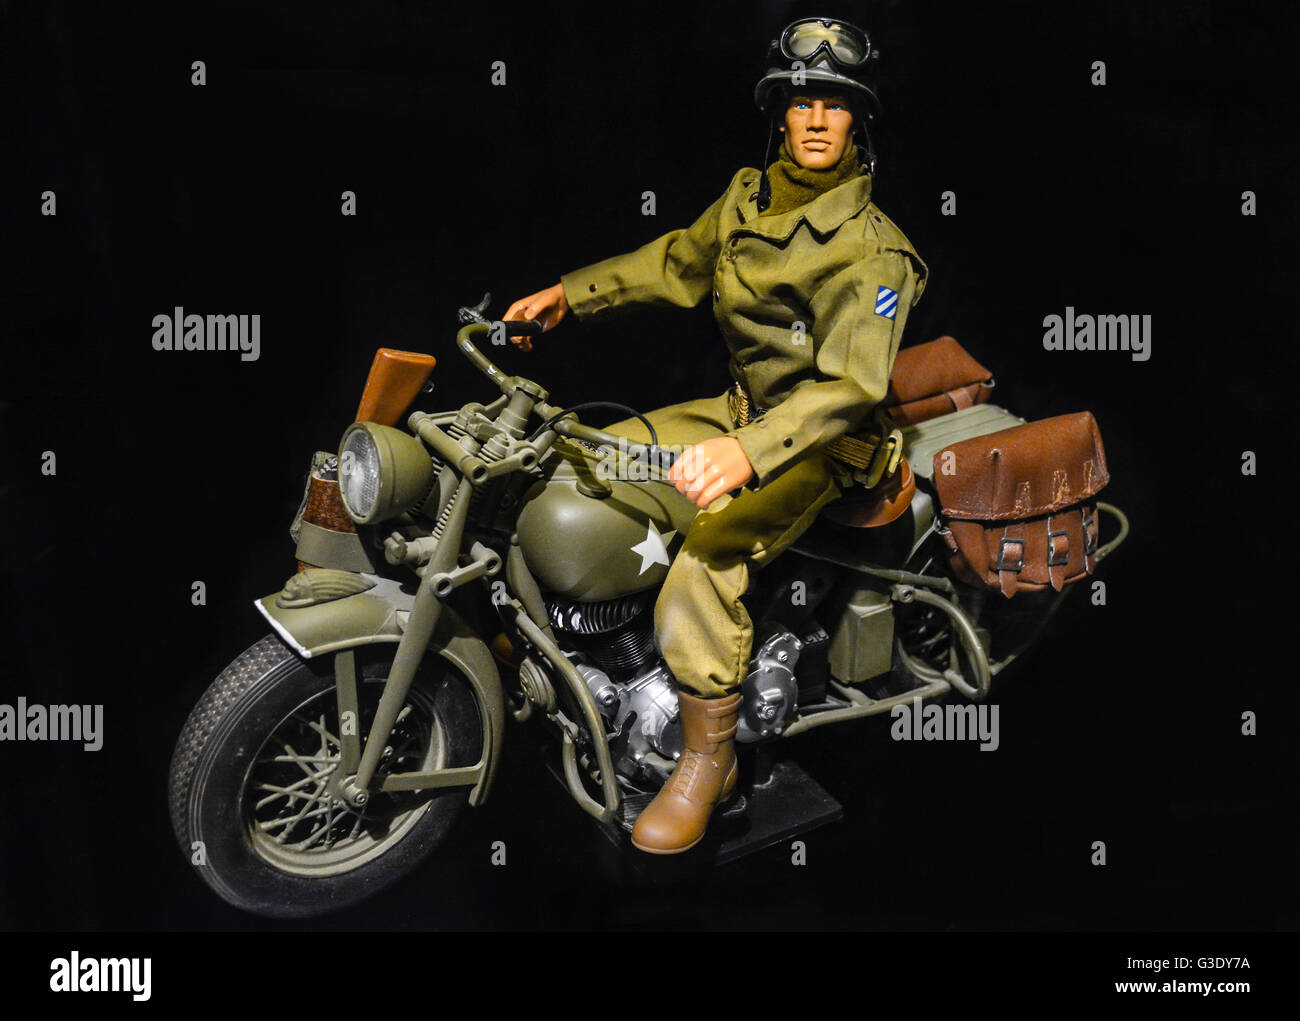 g i joe action man doll wears u s 3rd army uniform riding a harley stock photo royalty free. Black Bedroom Furniture Sets. Home Design Ideas